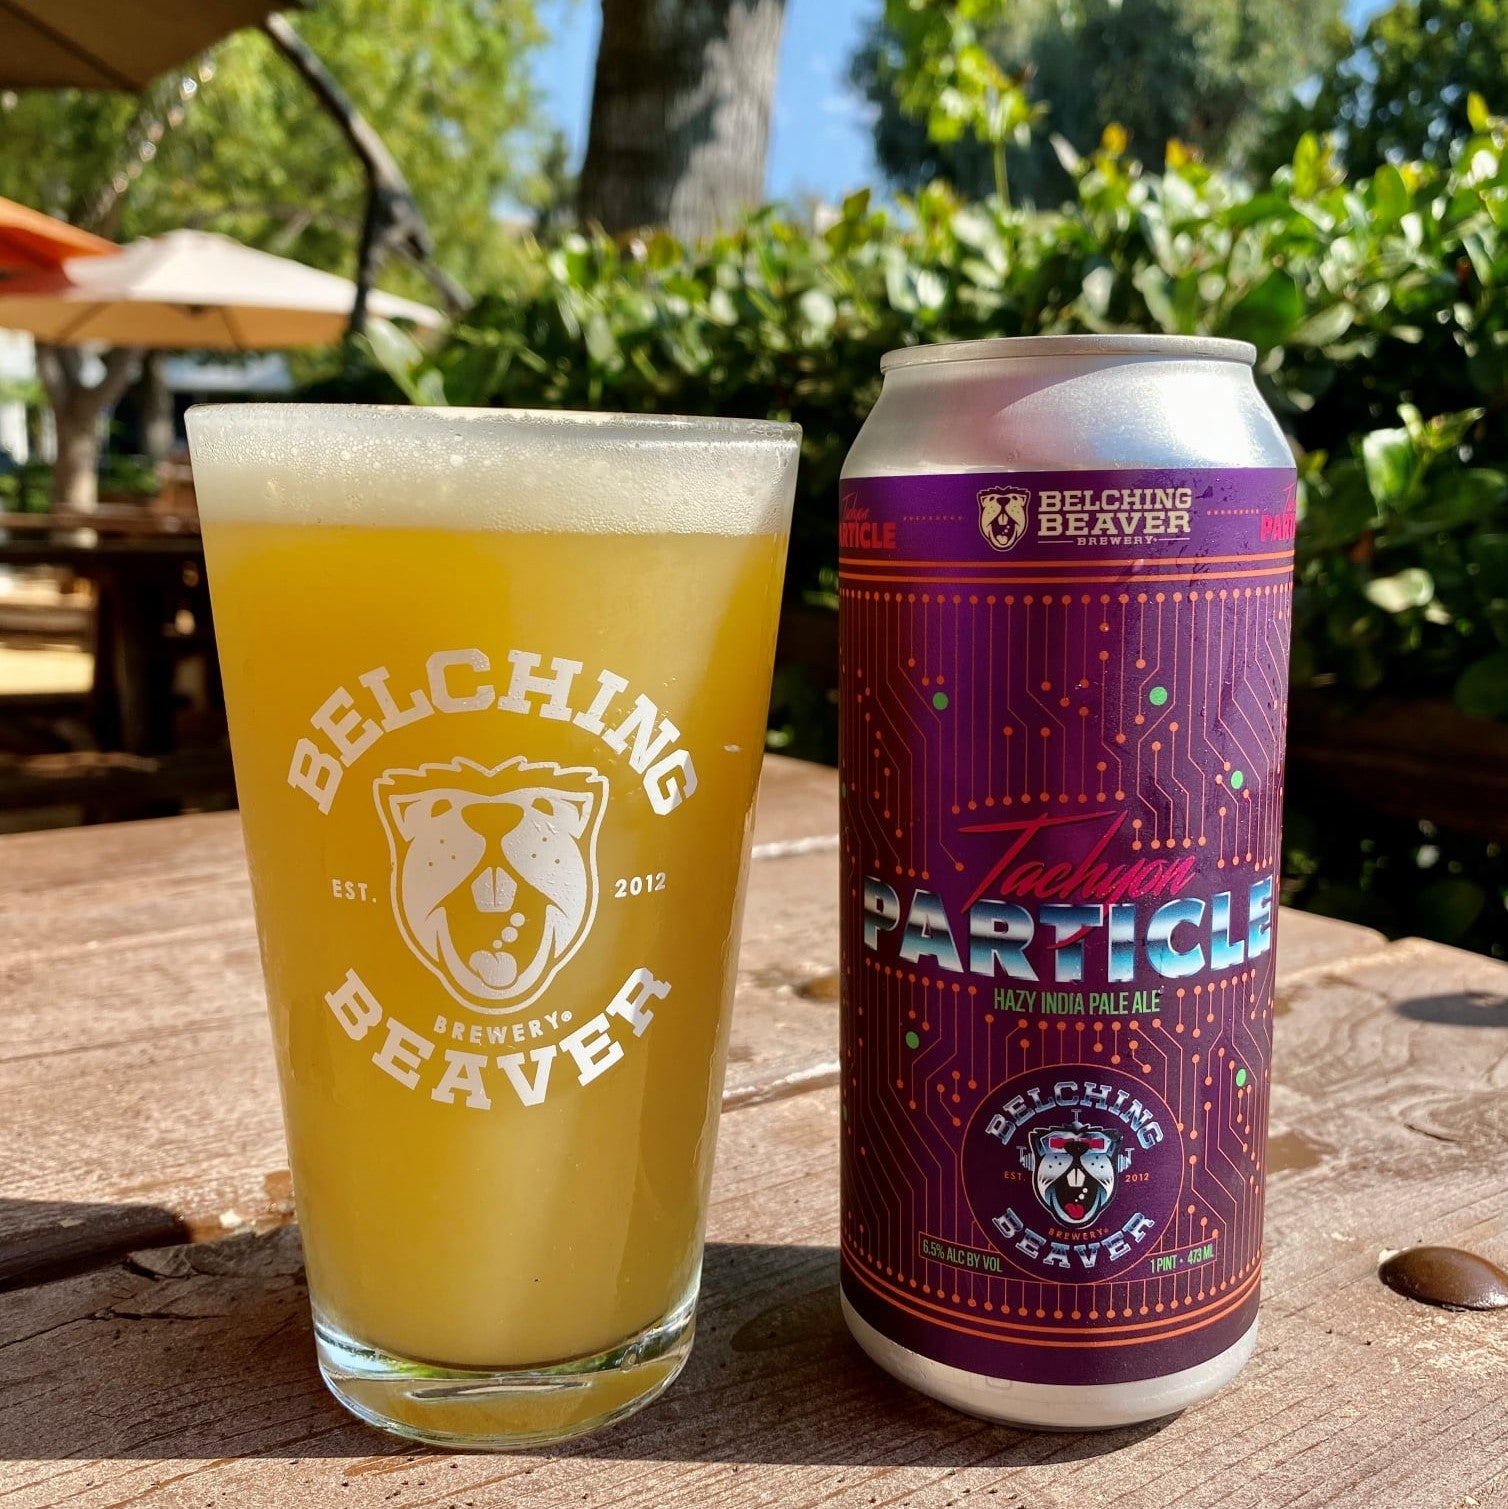 Tachyon Particle Hazy IPA 4-pack